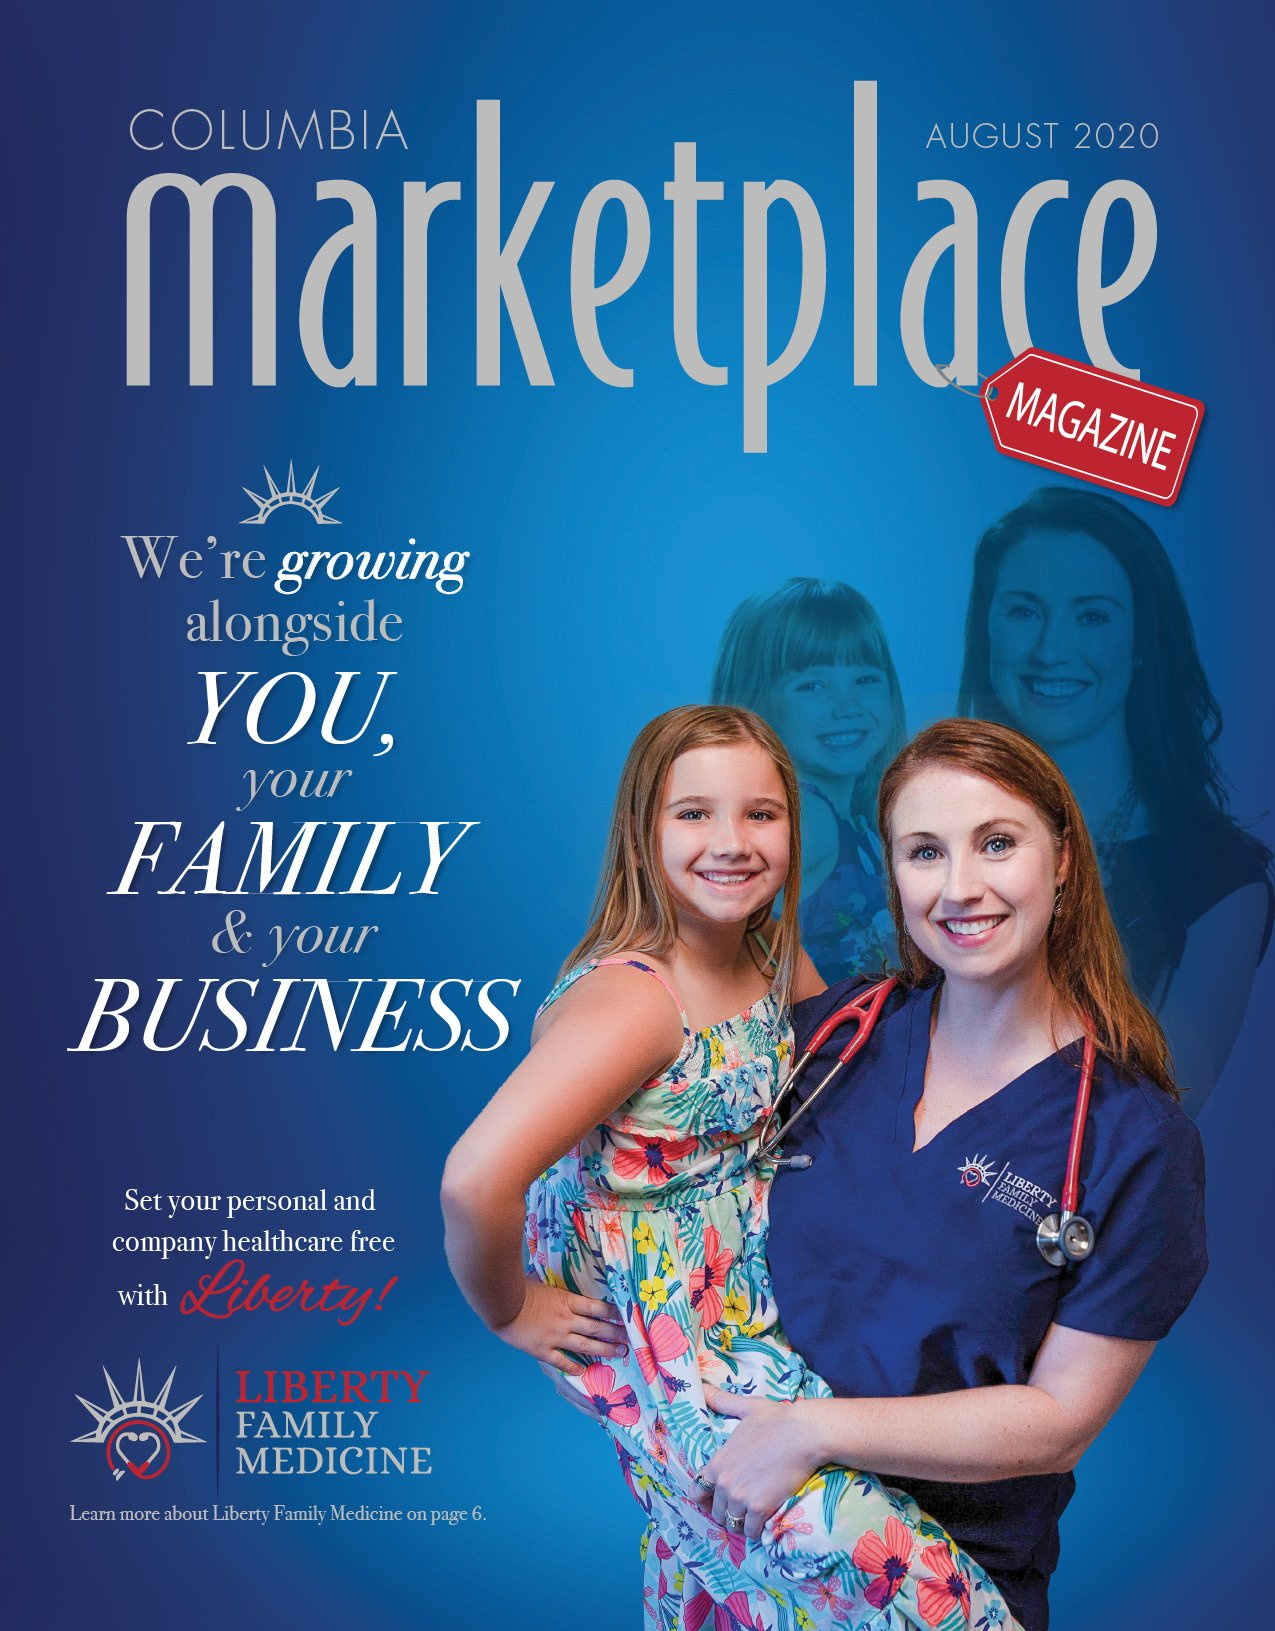 Marketplace Magazine by Modern Media Concepts August 2020 Edition Featuring Liberty Family Medicine in Columbia Missouri